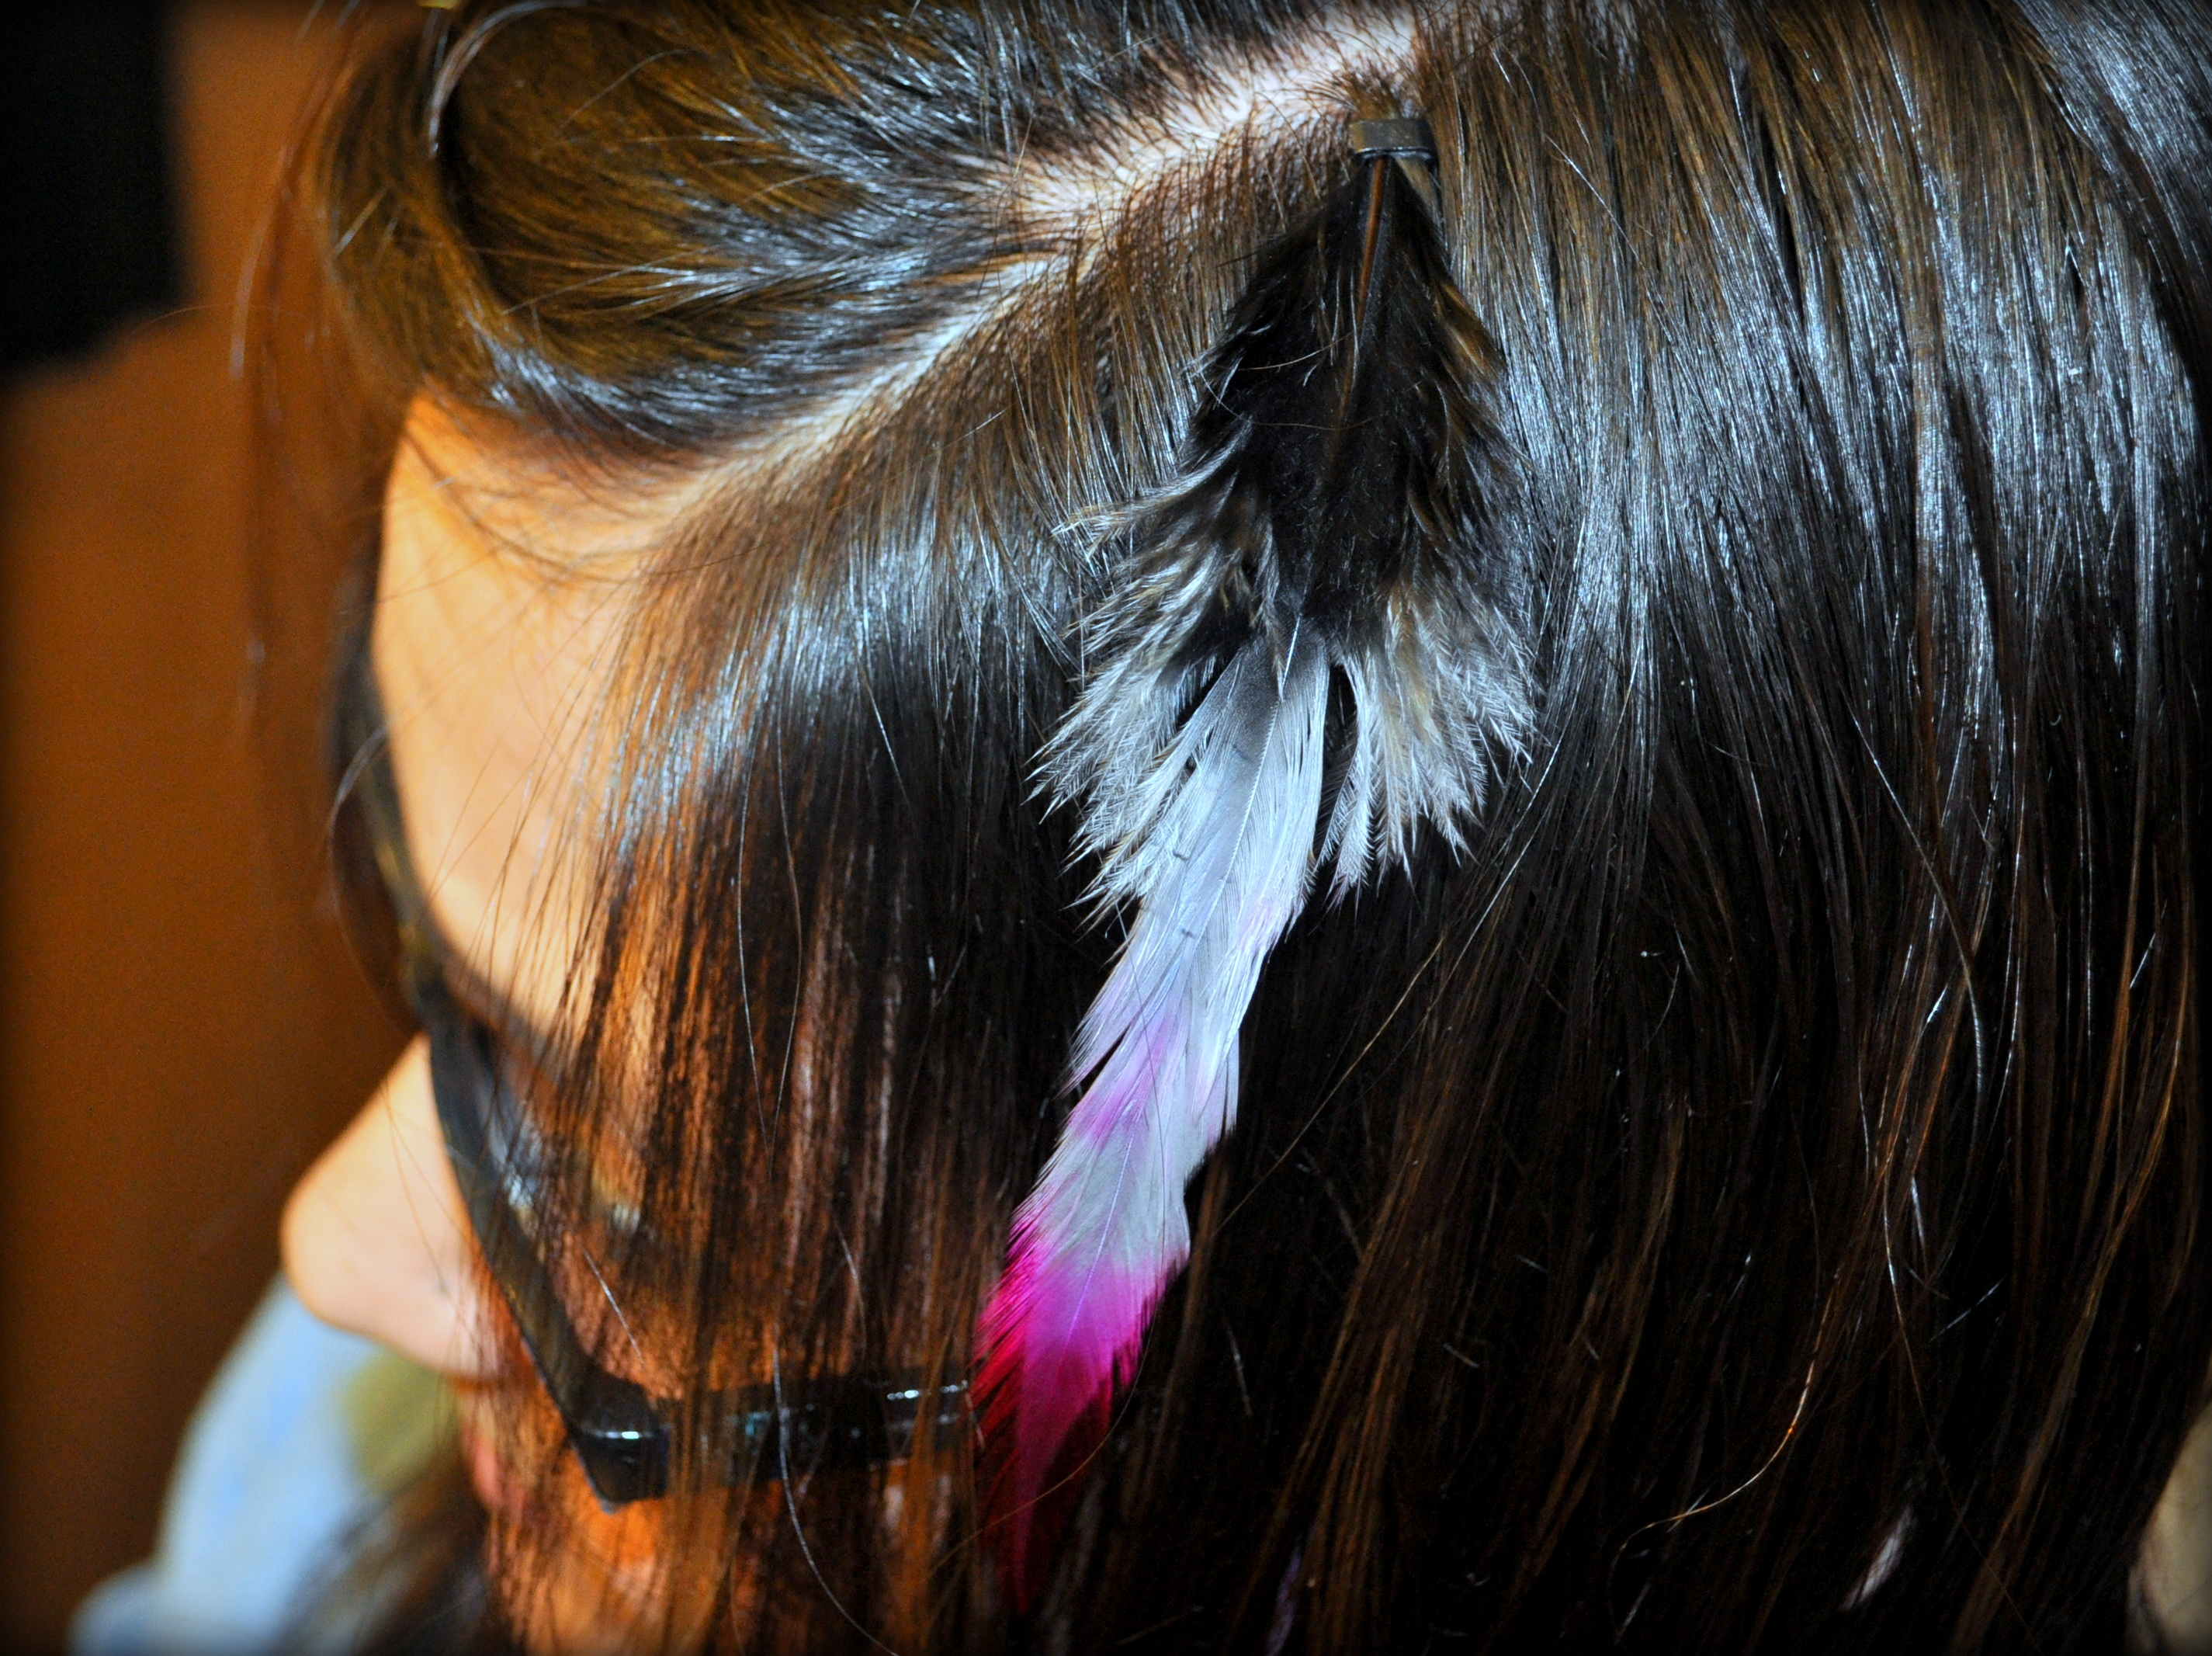 Diy feather hair extensions no special tools required the bead and feather should be securely attached to your hair you can wash them dry them and heat styling your hair should not damage them at all pmusecretfo Gallery